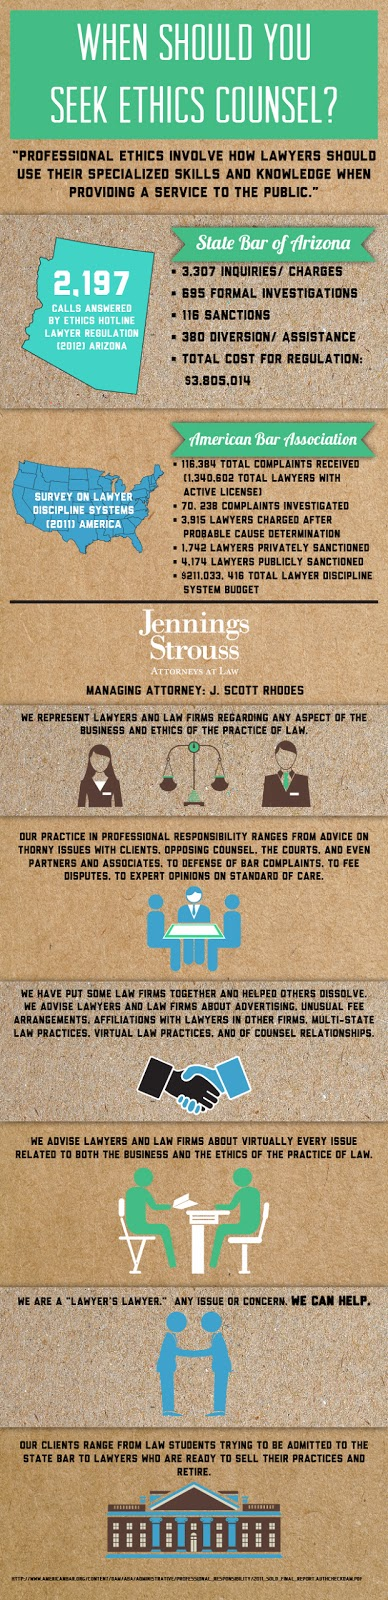 Ethics, Professional Licensing & Discipline Law